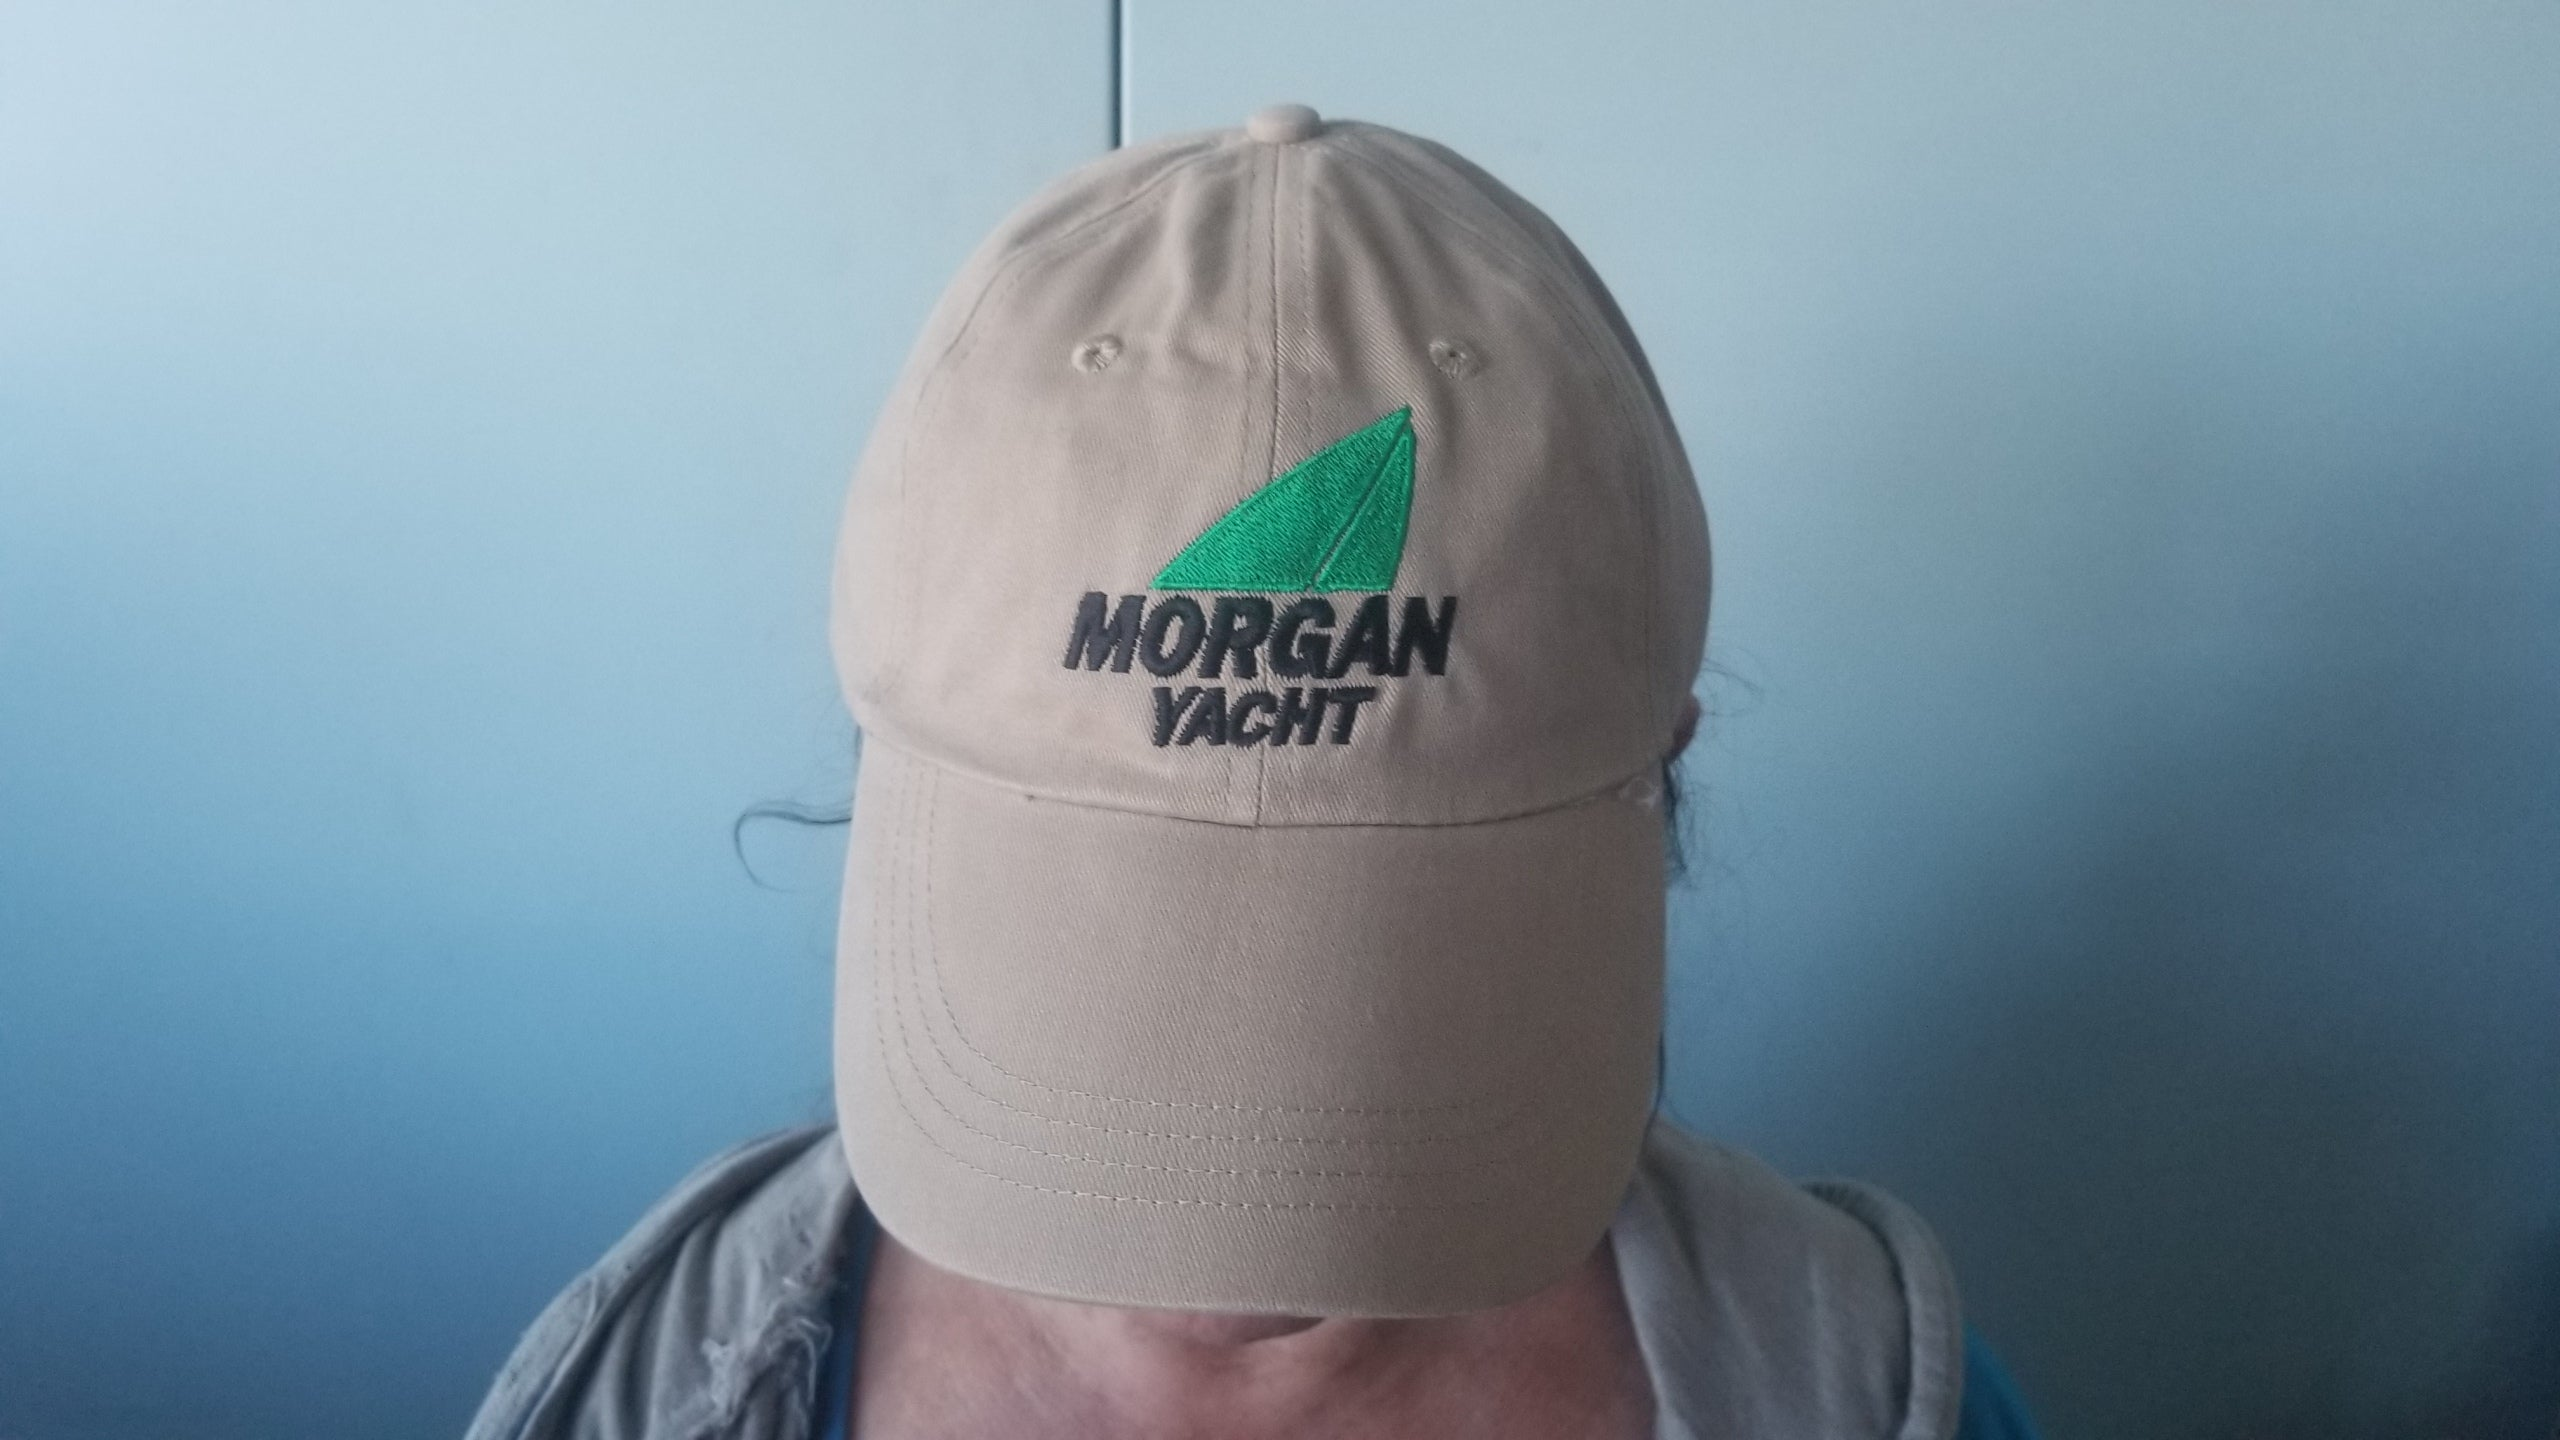 Morgan Yacht Embroidered Khaki Cap